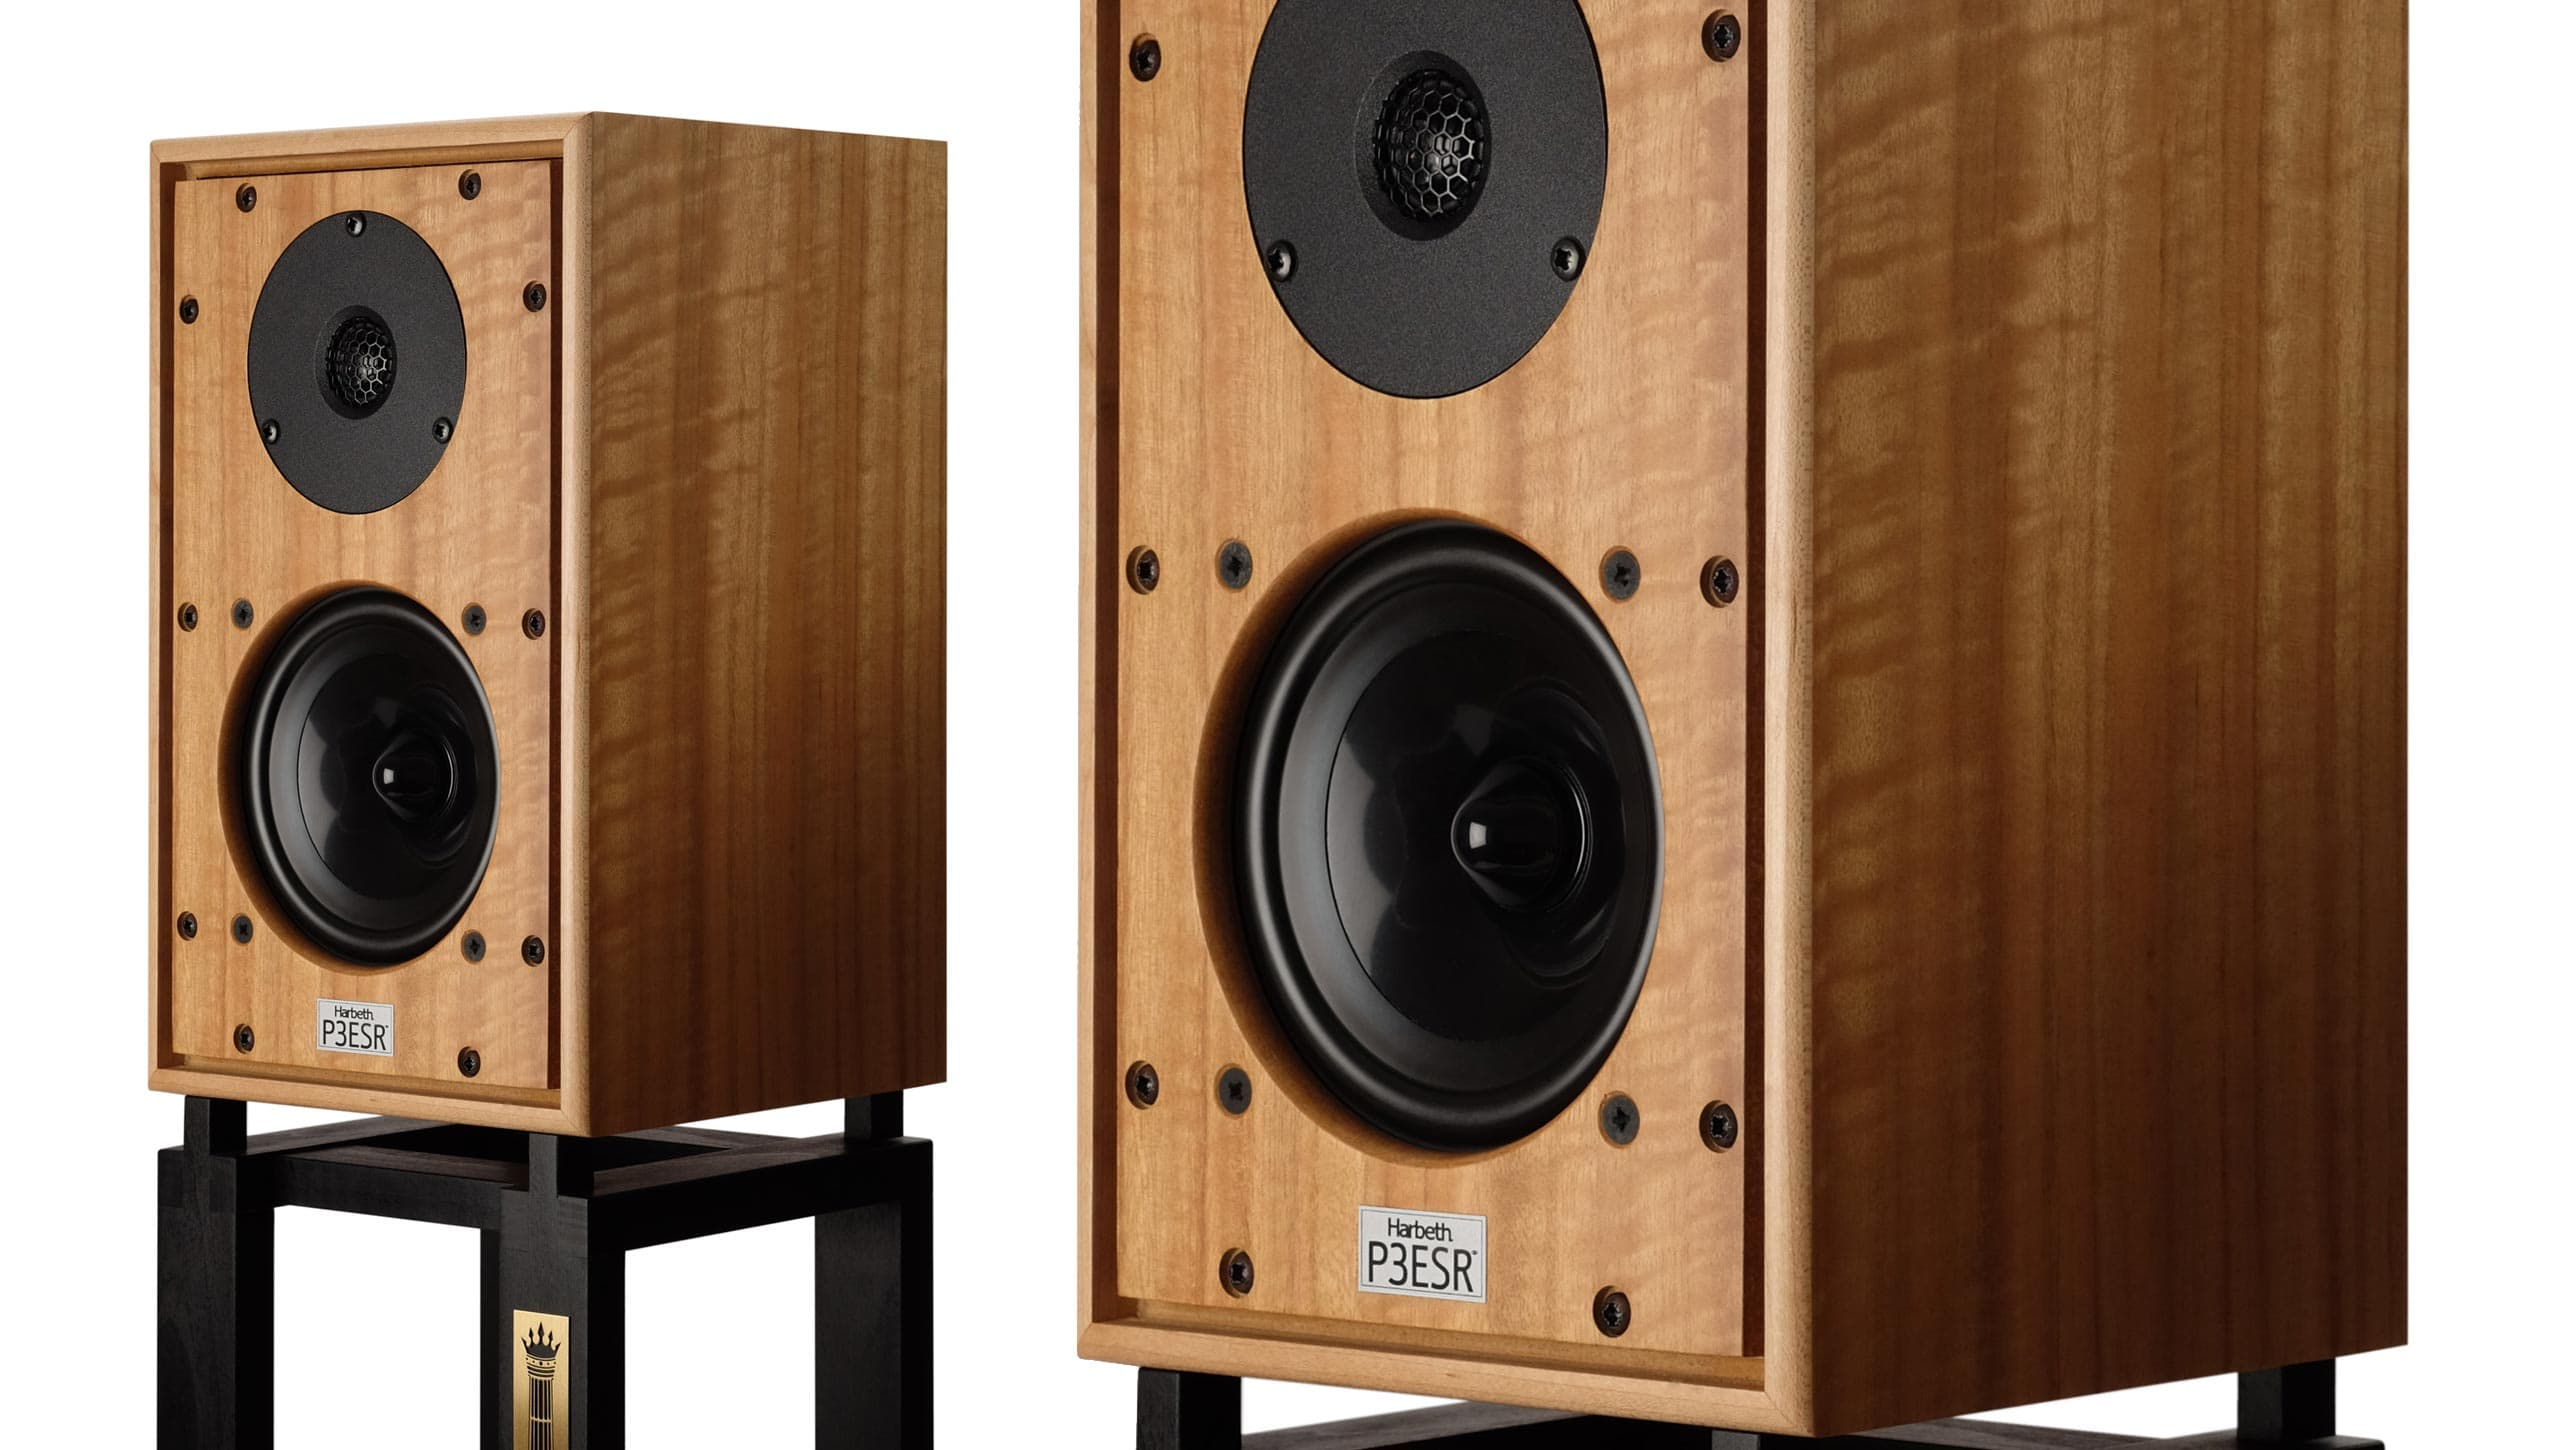 Harbeth loudspeakers on stands